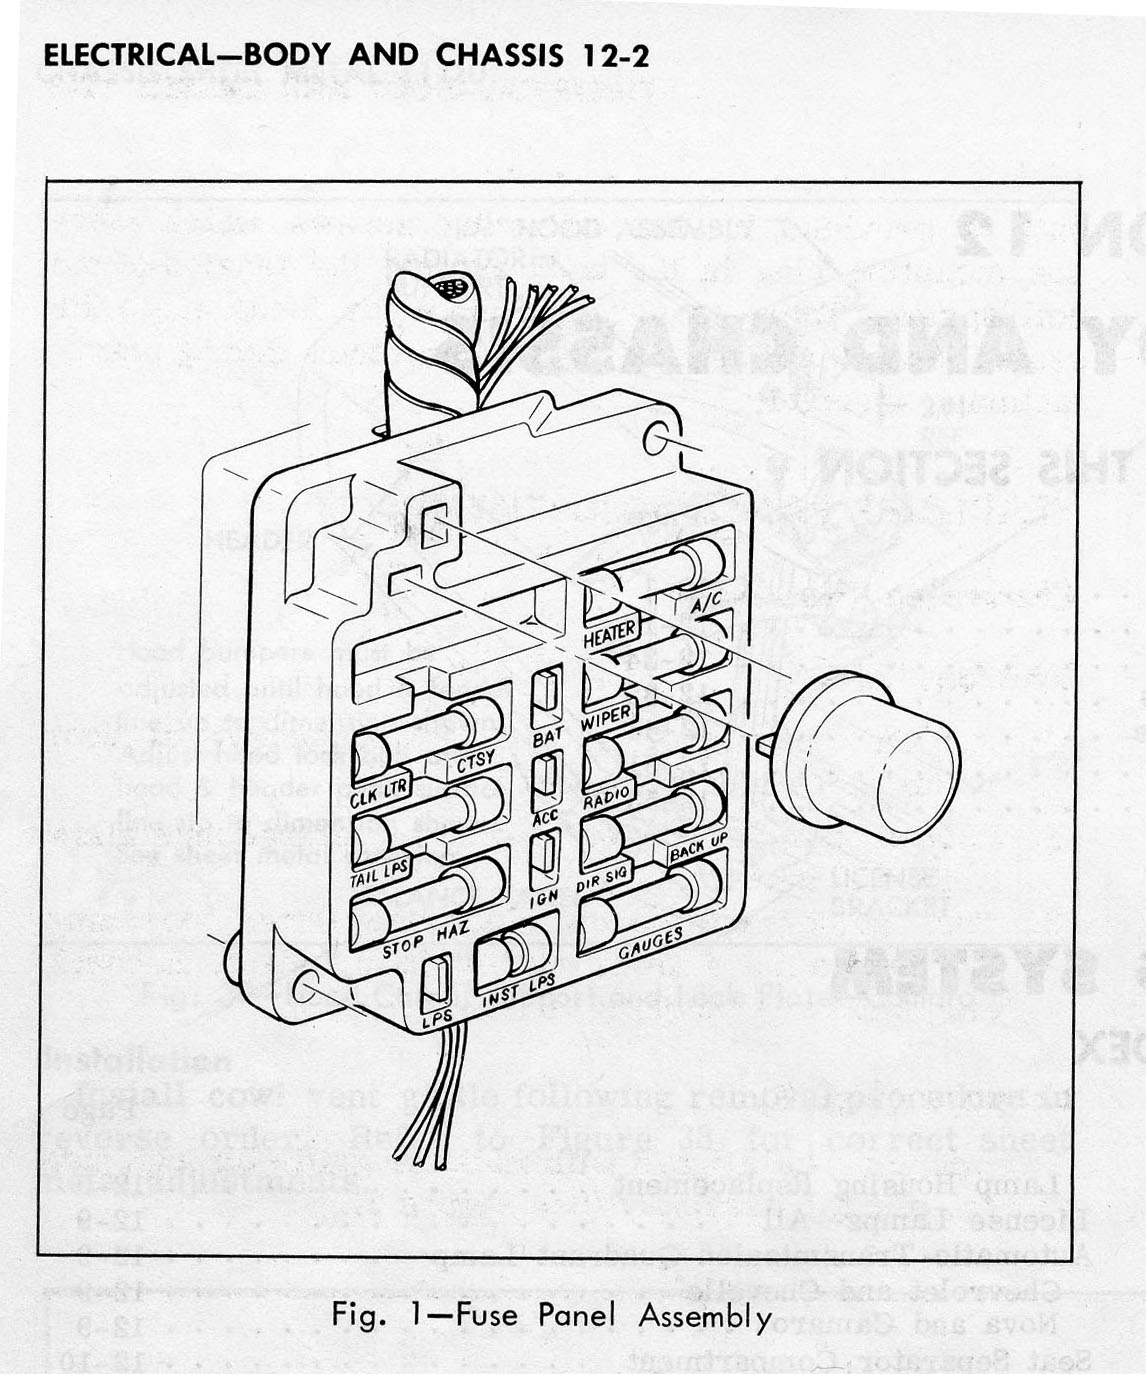 1968 corvette fuse panel diagram